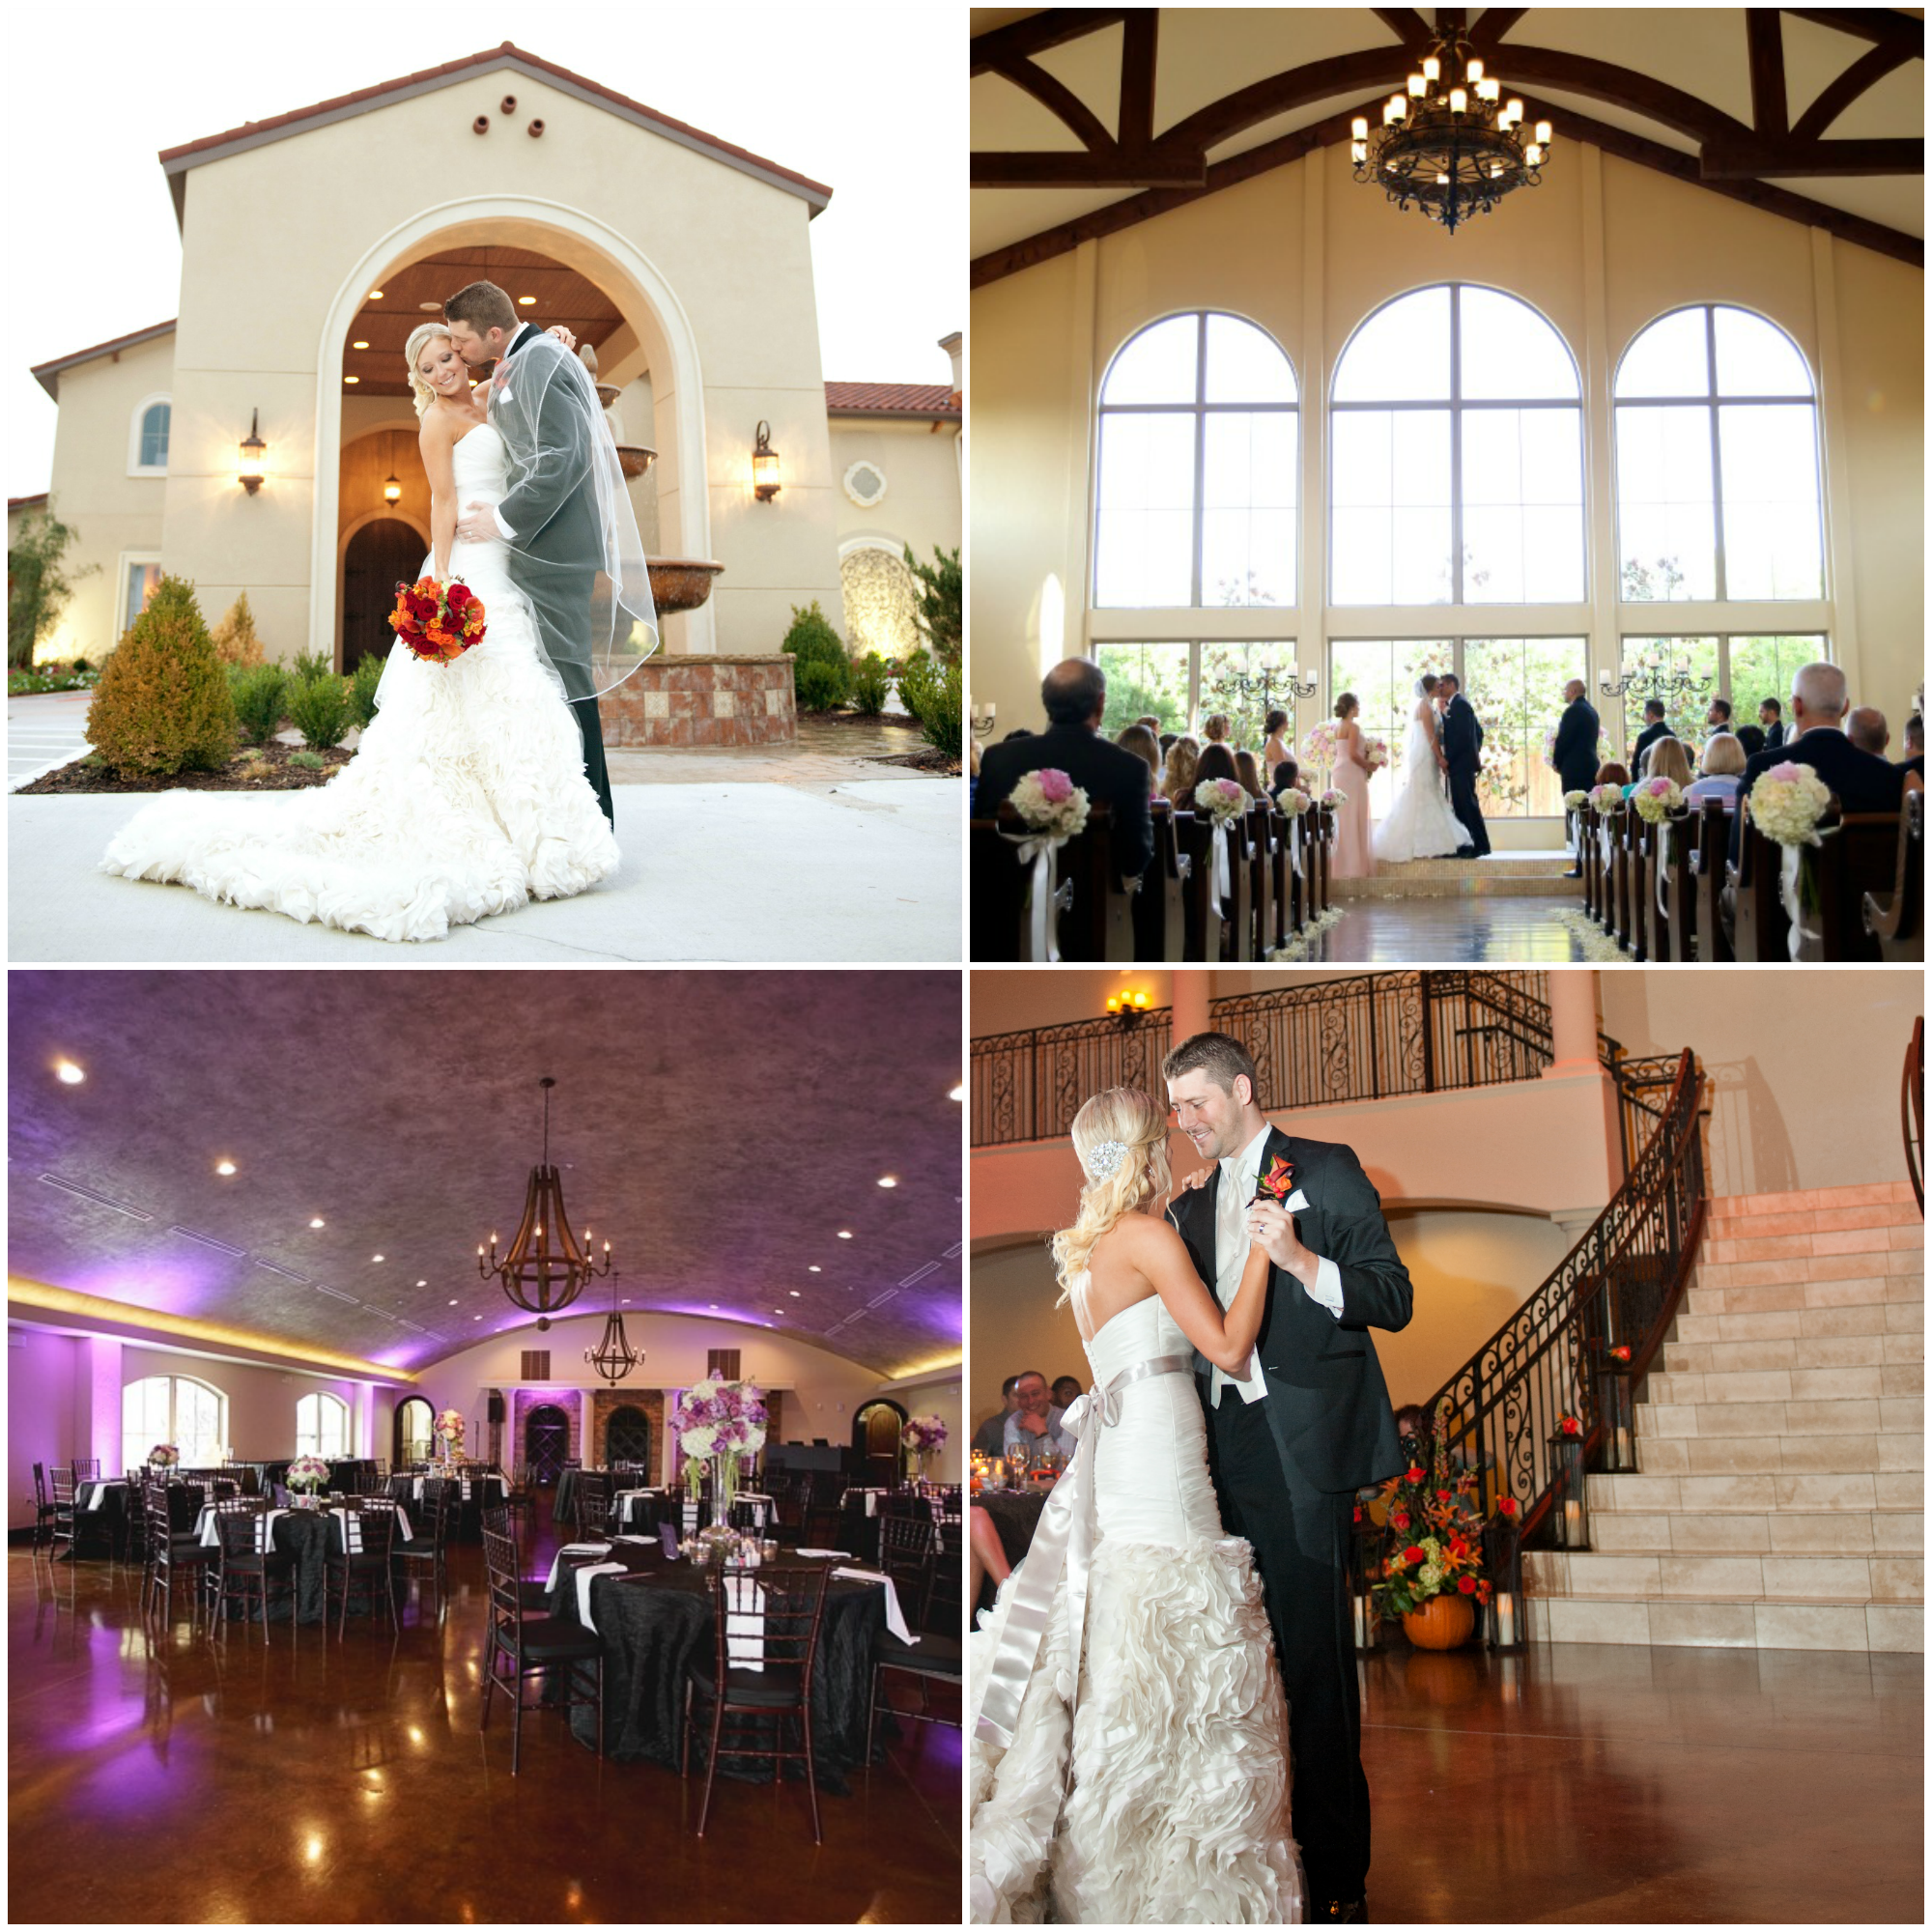 Chapel At Ana Villa Testimonial Video The Colony Texas Dallas Wedding Venue Walters